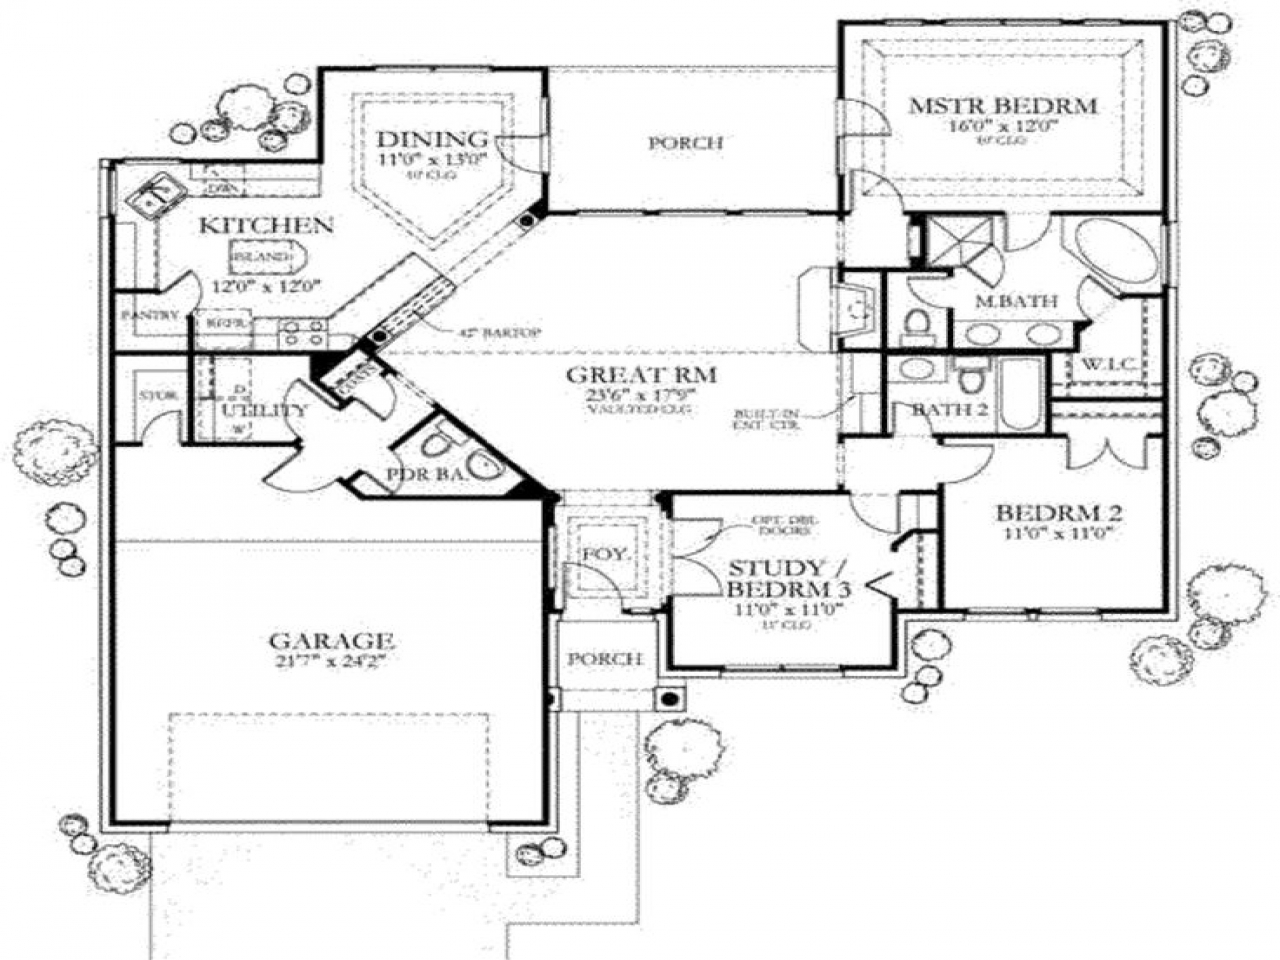 1500 sq ft house floor plans 1500 sq ft one story house for 1500 sq ft single story house plans